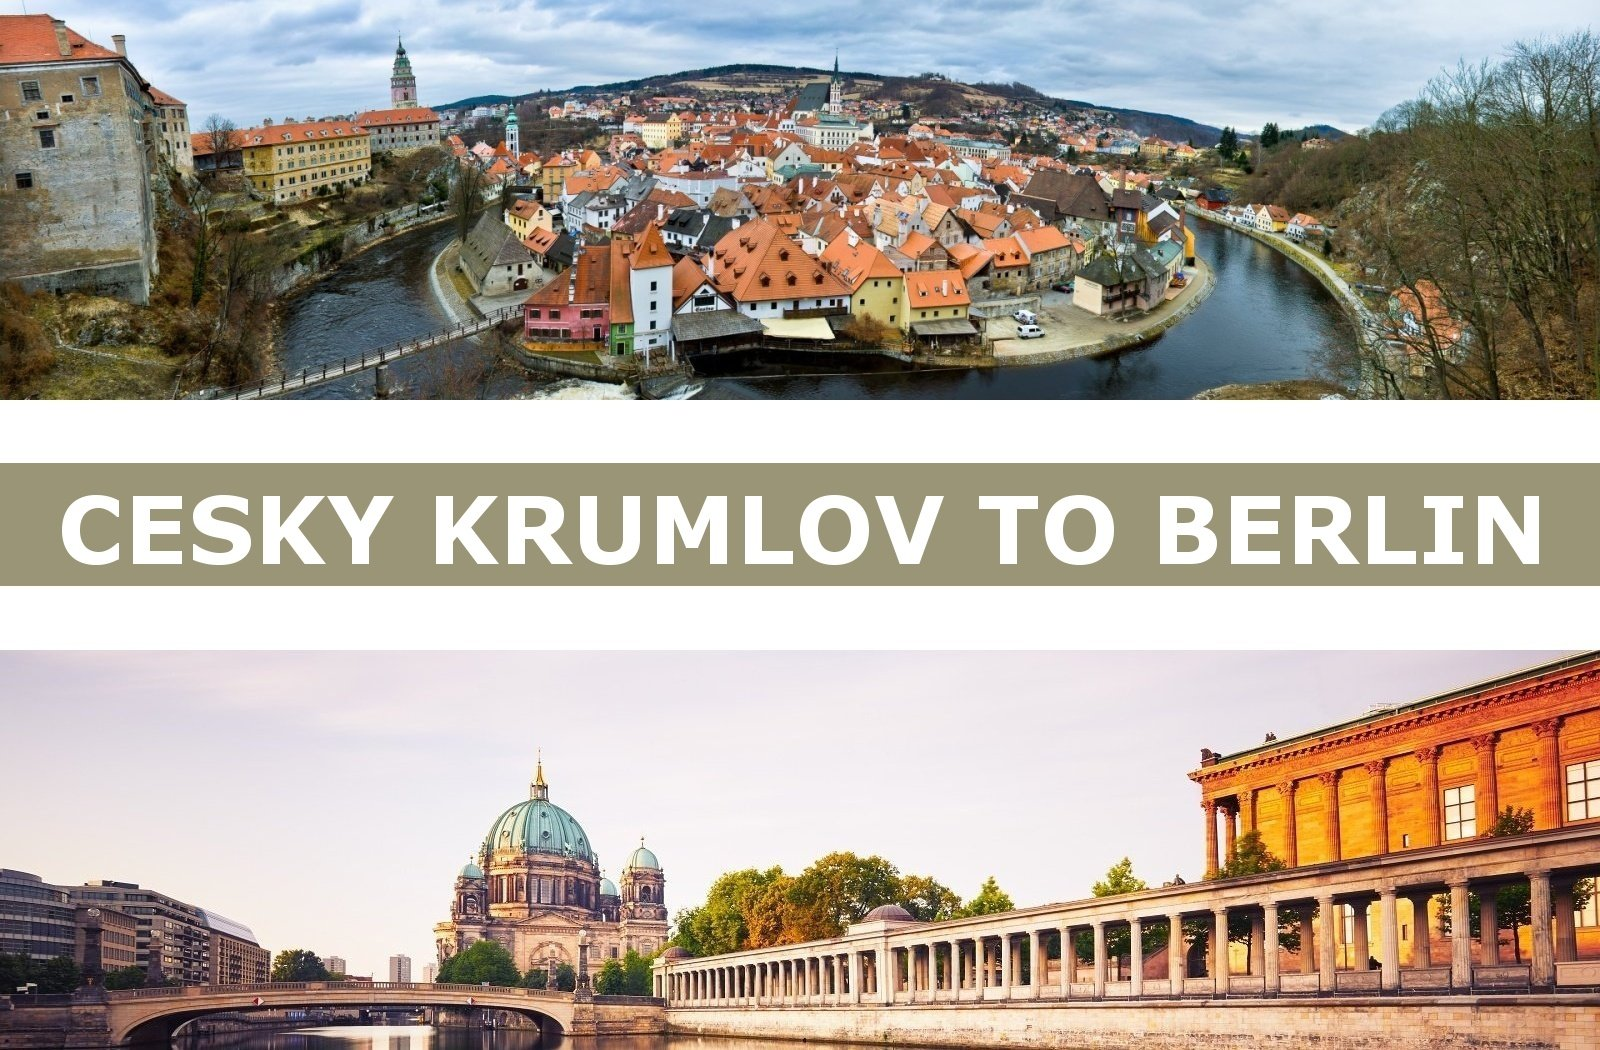 Taxi from Cesky Krumlov to Berlin